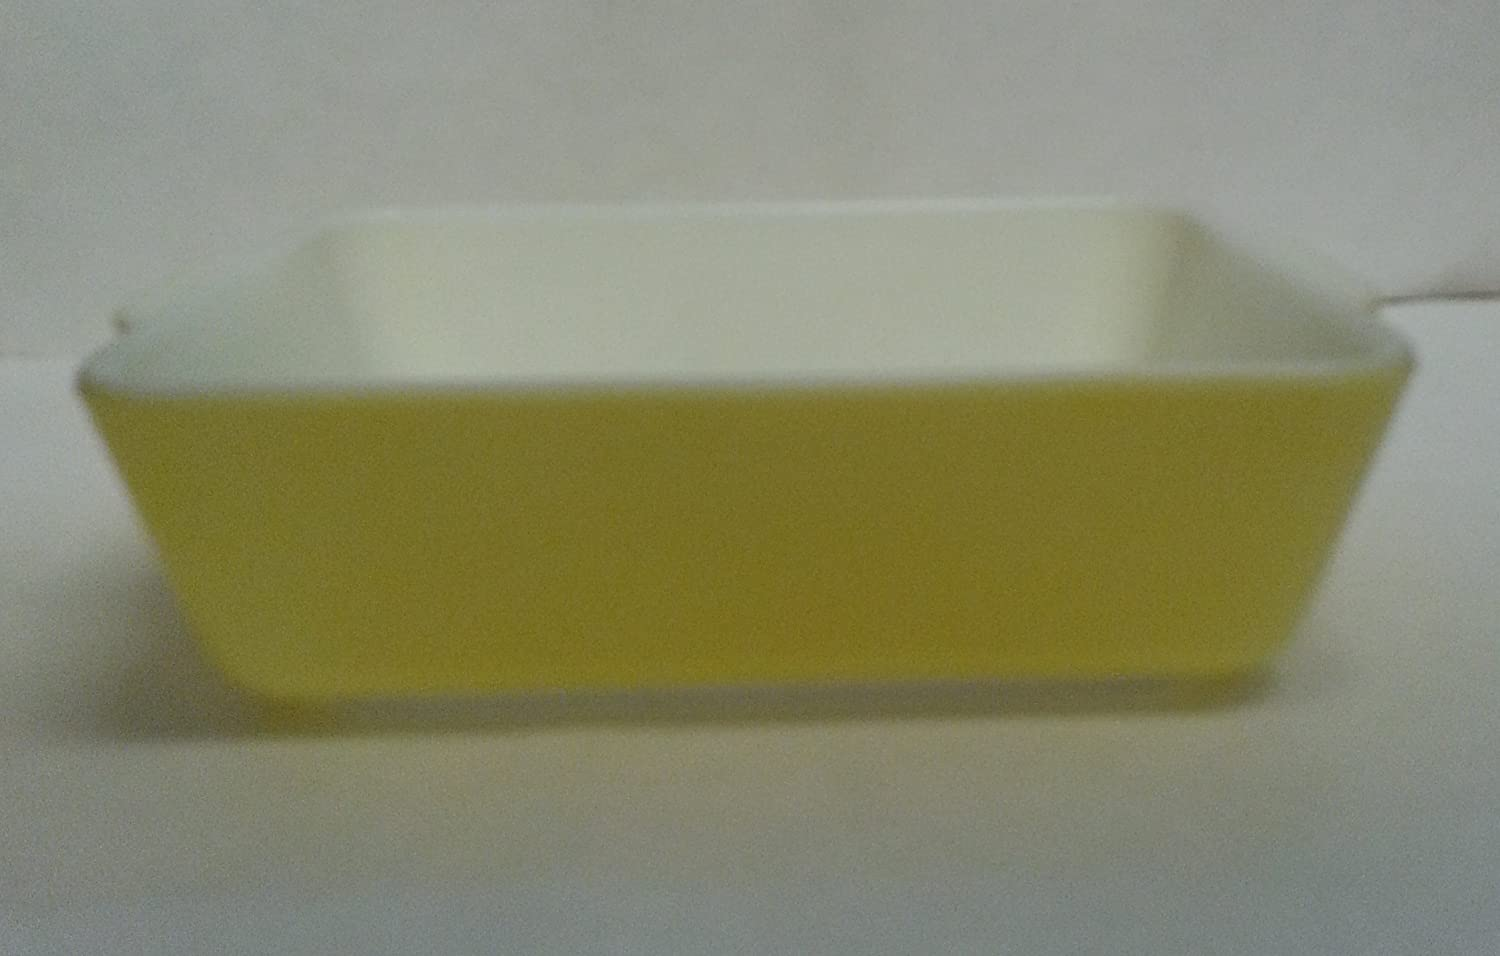 Vintage Pyrex Refigerator Dish 503 Yellow with original lid 1948-1960